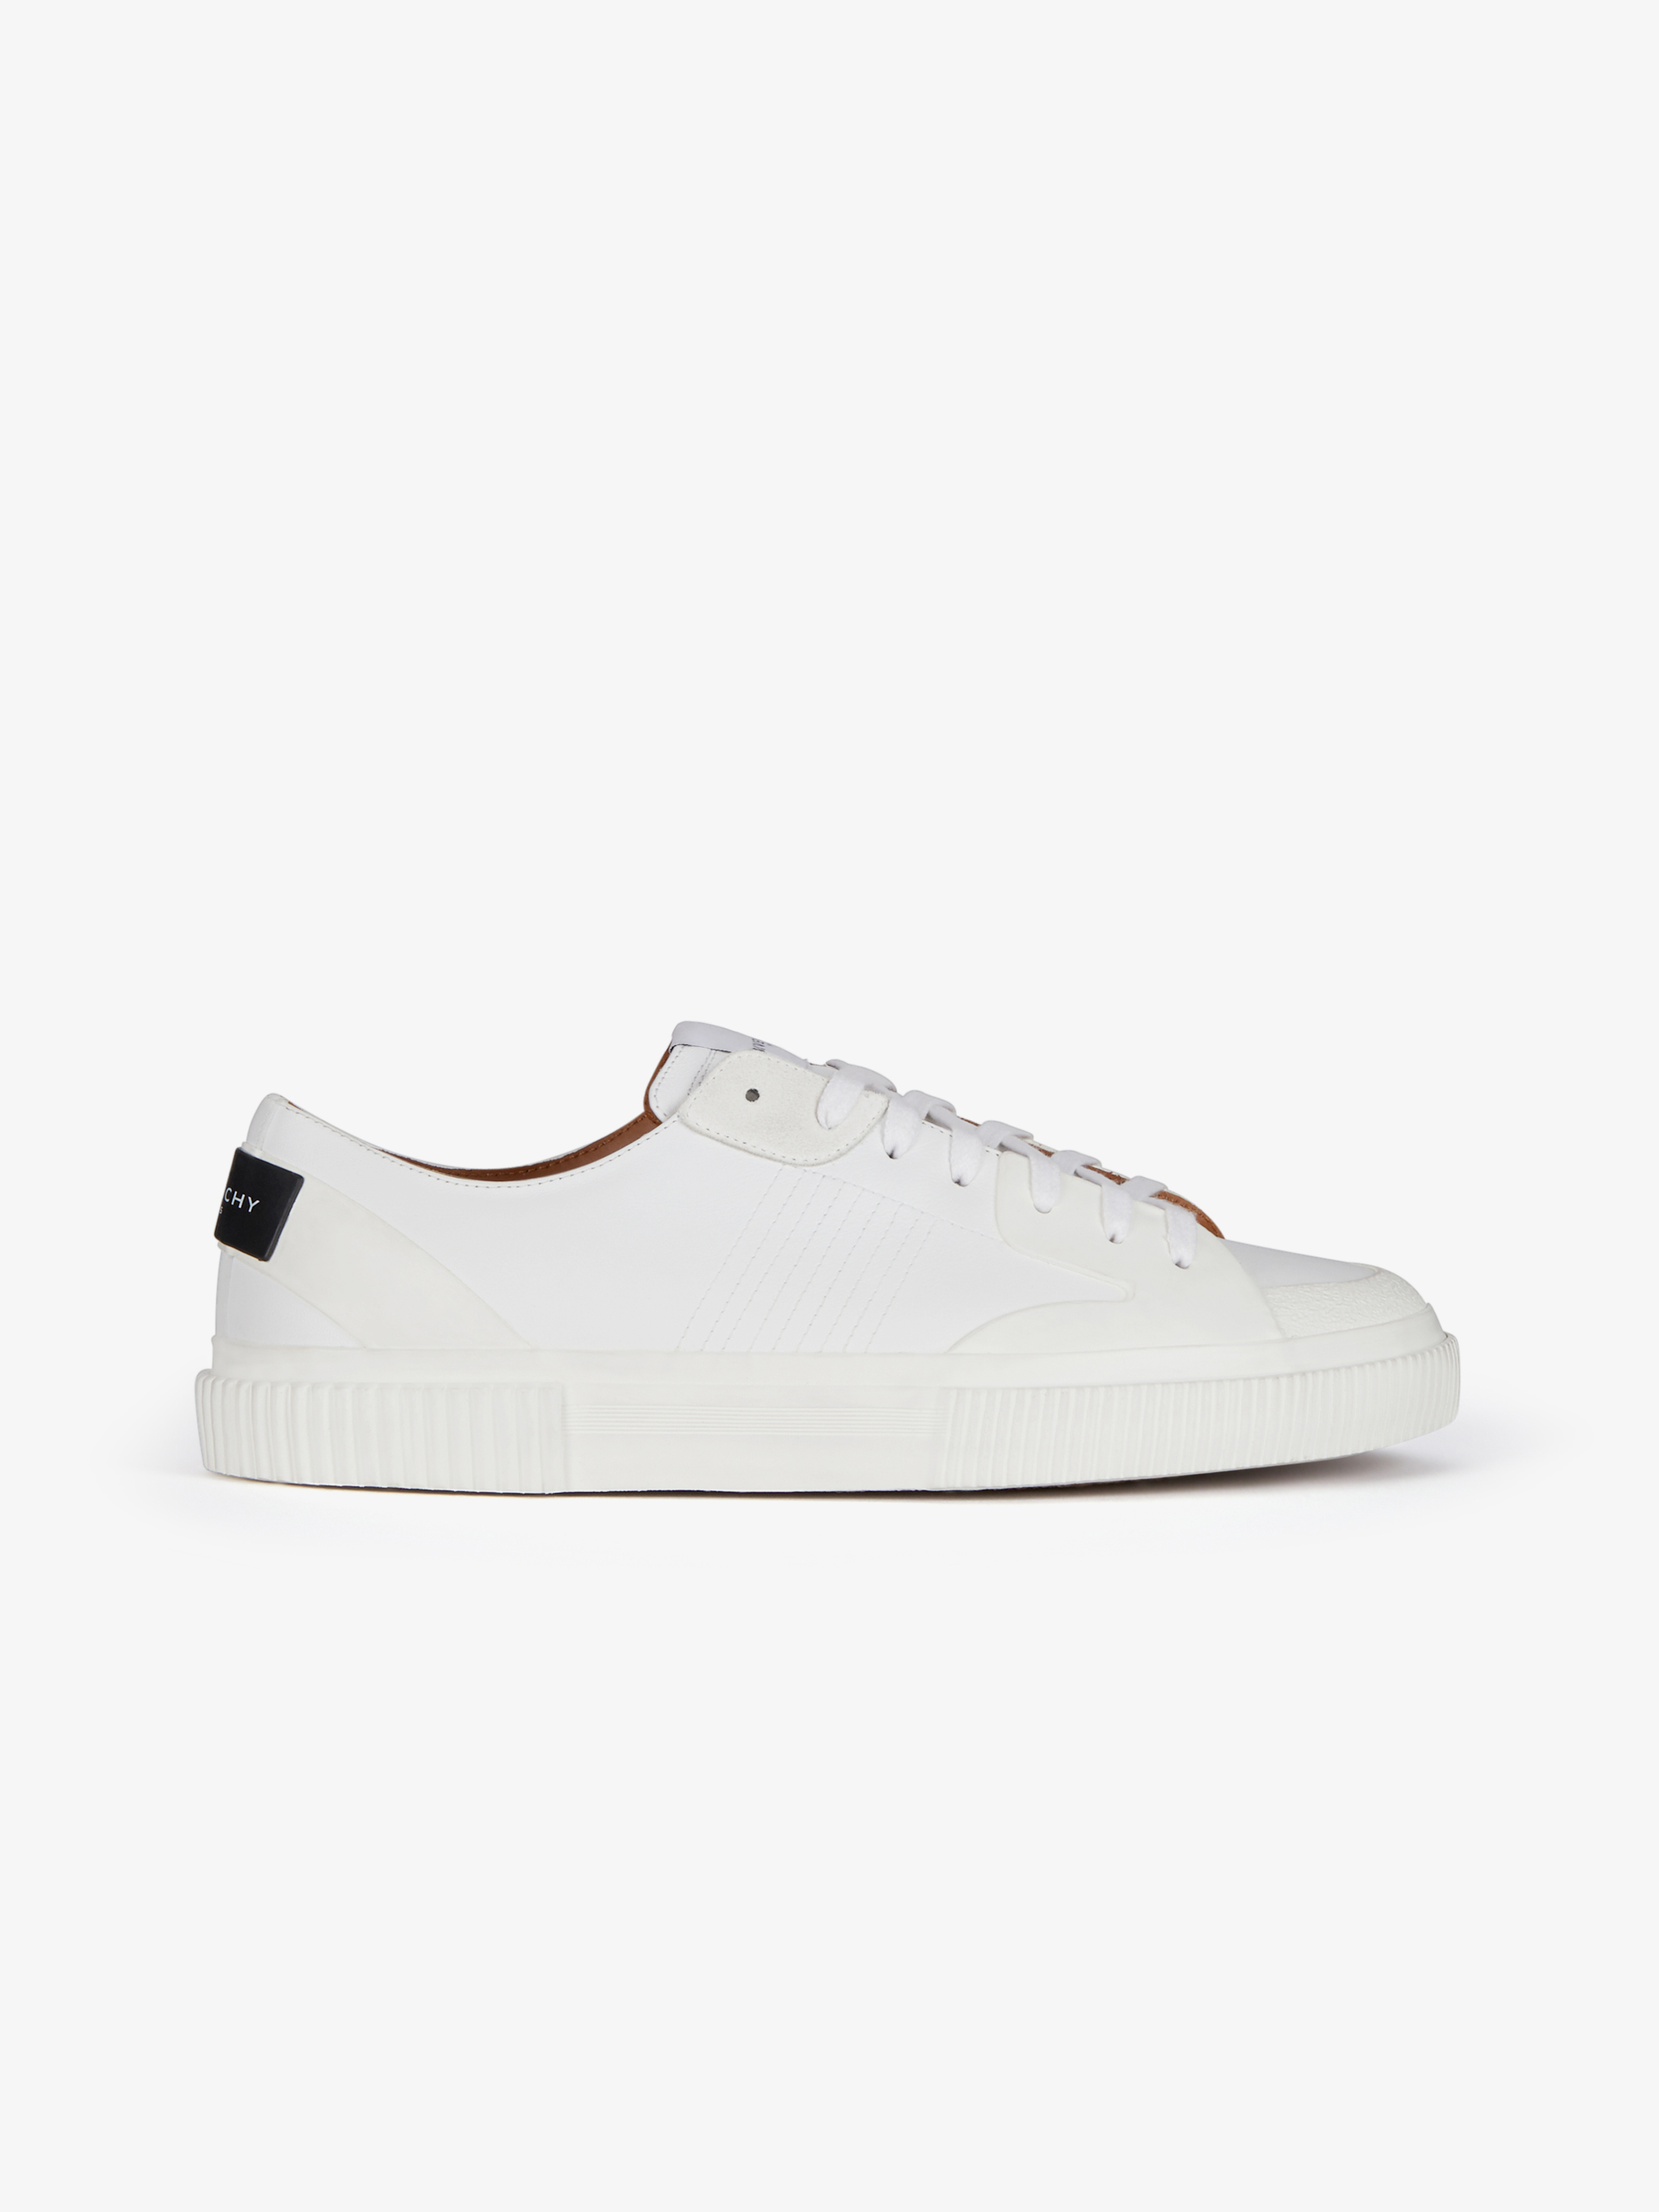 Tennis Light low sneakers in leather